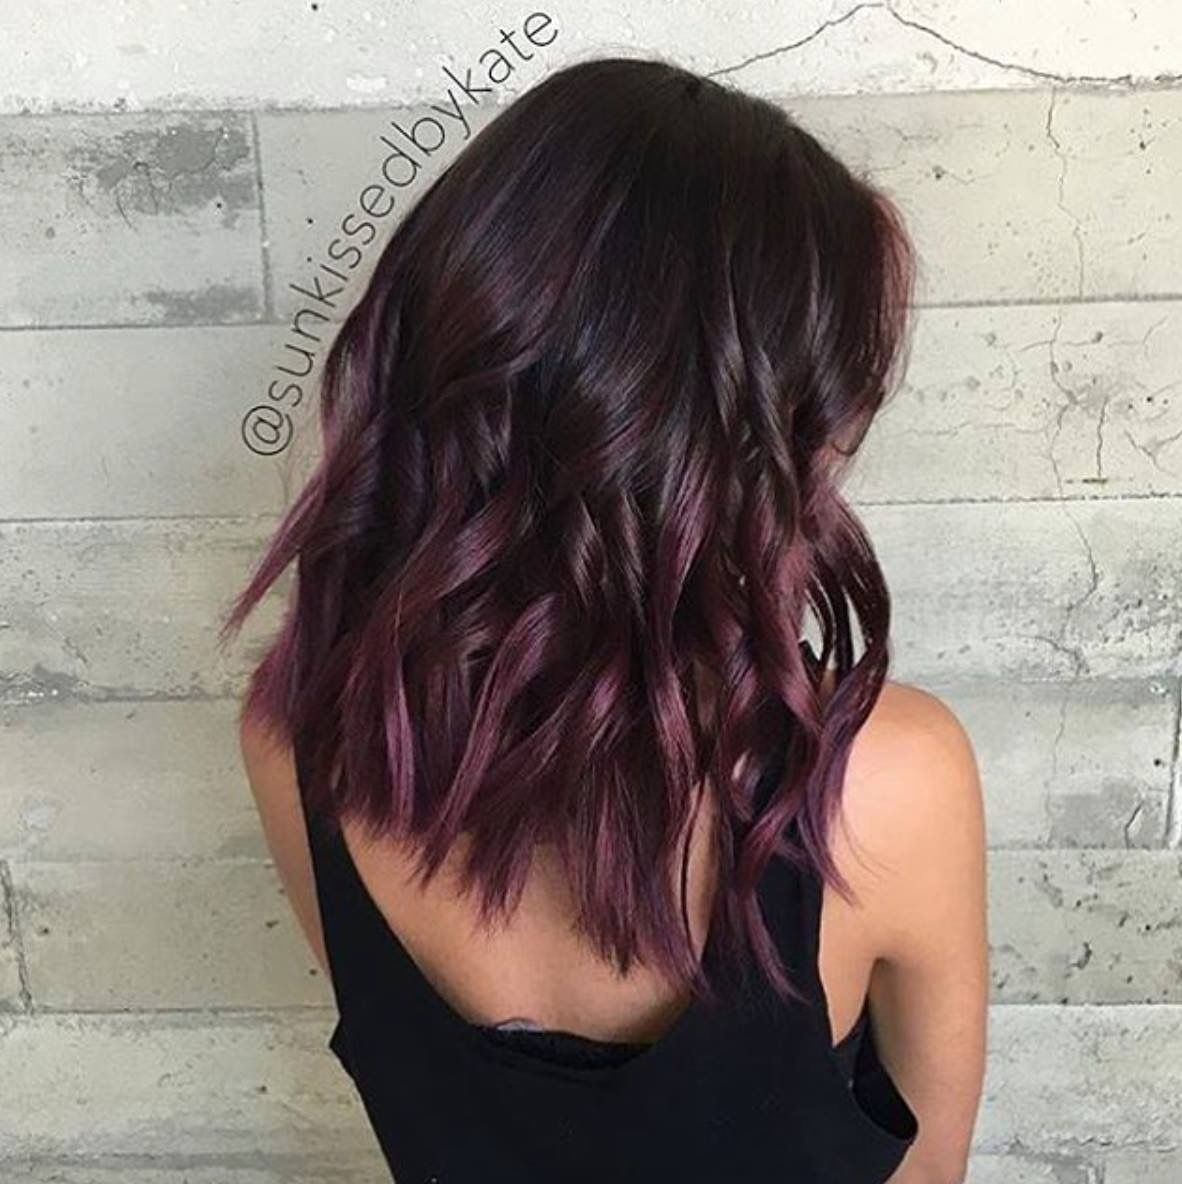 Love the color Hair colors Pinterest Balayage Chocolate and Dark